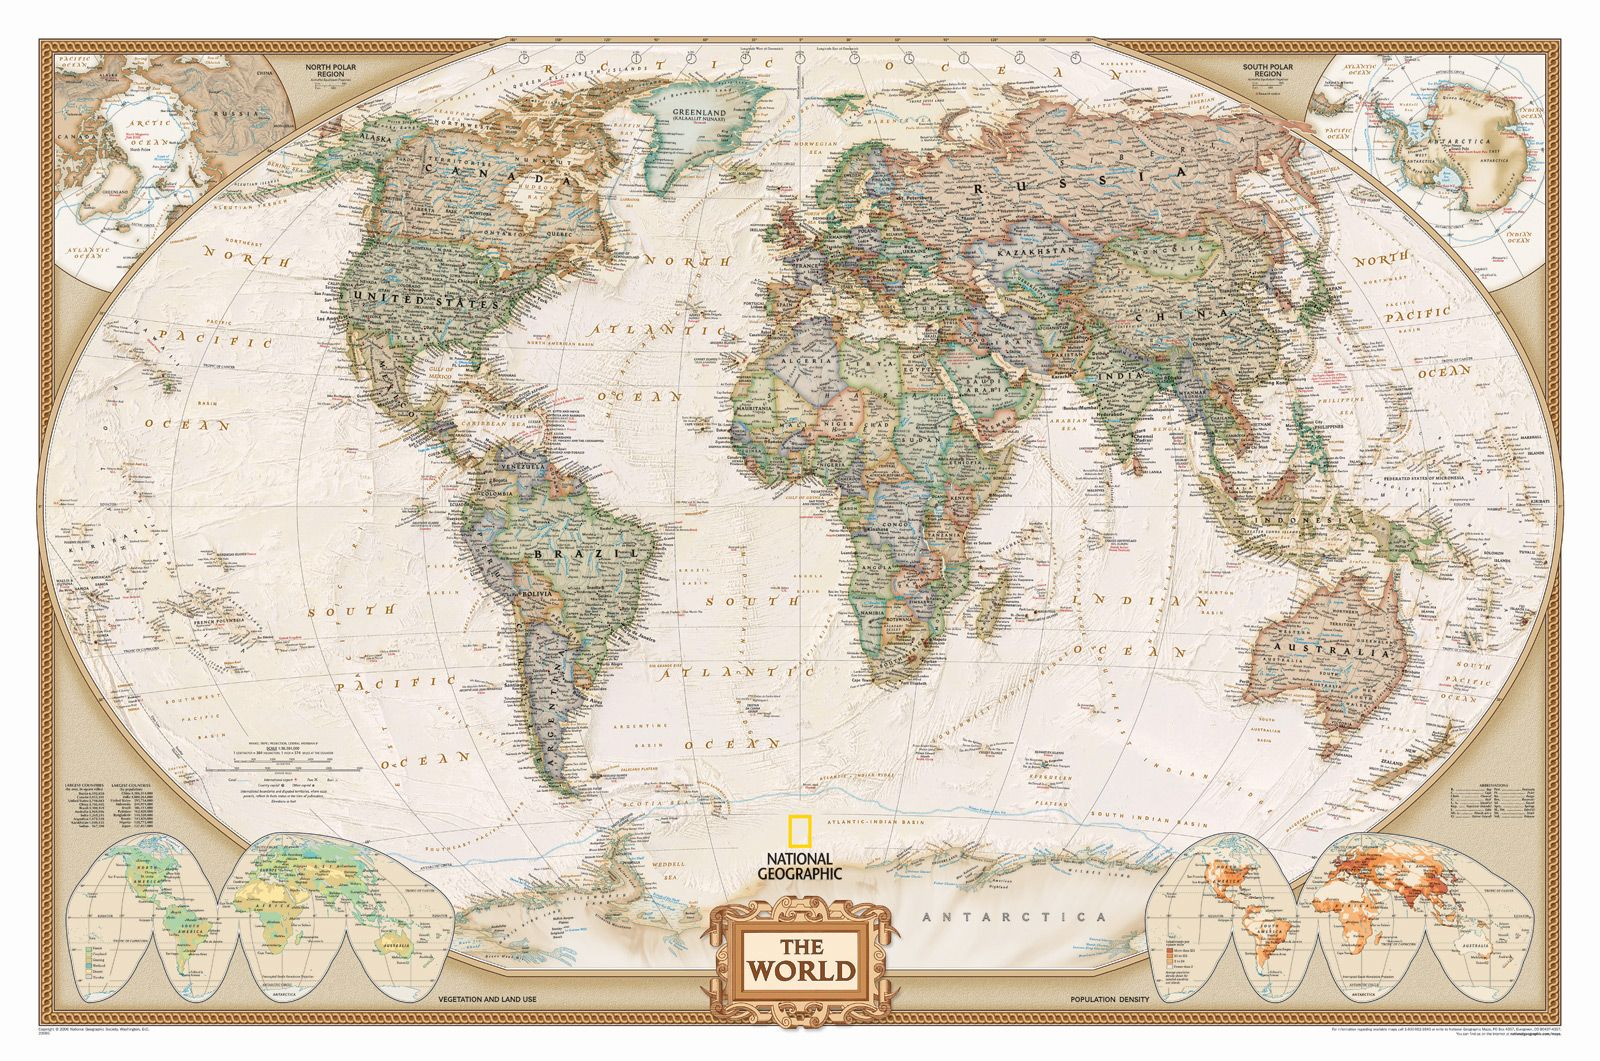 National geographic old world map wallpaper interior pinterest national geographic old world map wallpaper gumiabroncs Gallery